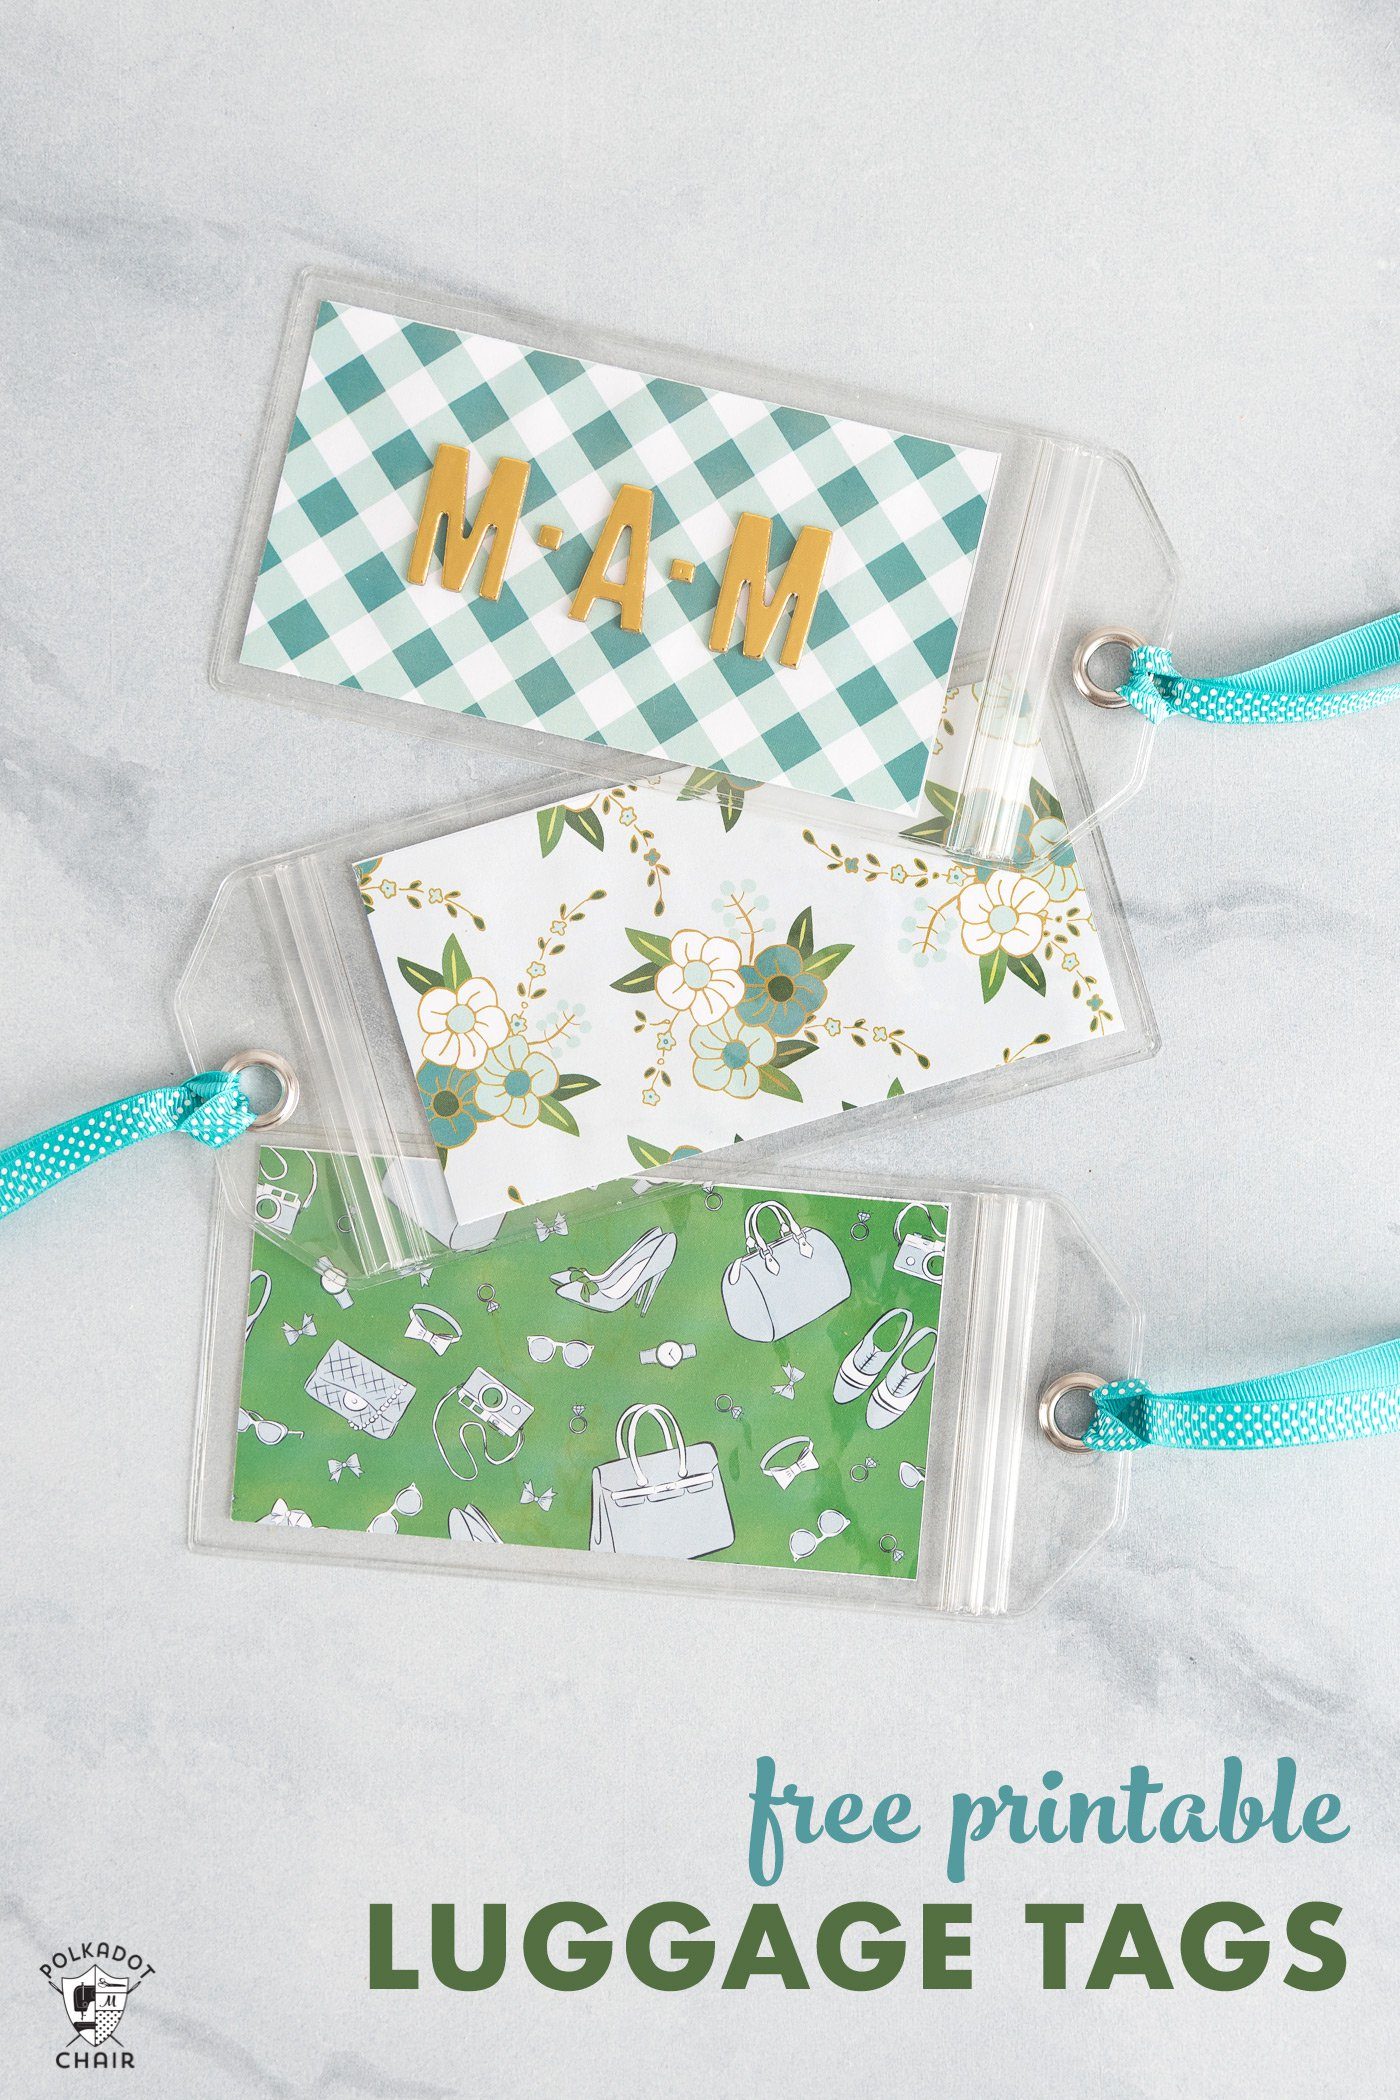 Free Printable Luggage Tags - The Polka Dot Chair - Free Printable Luggage Tags